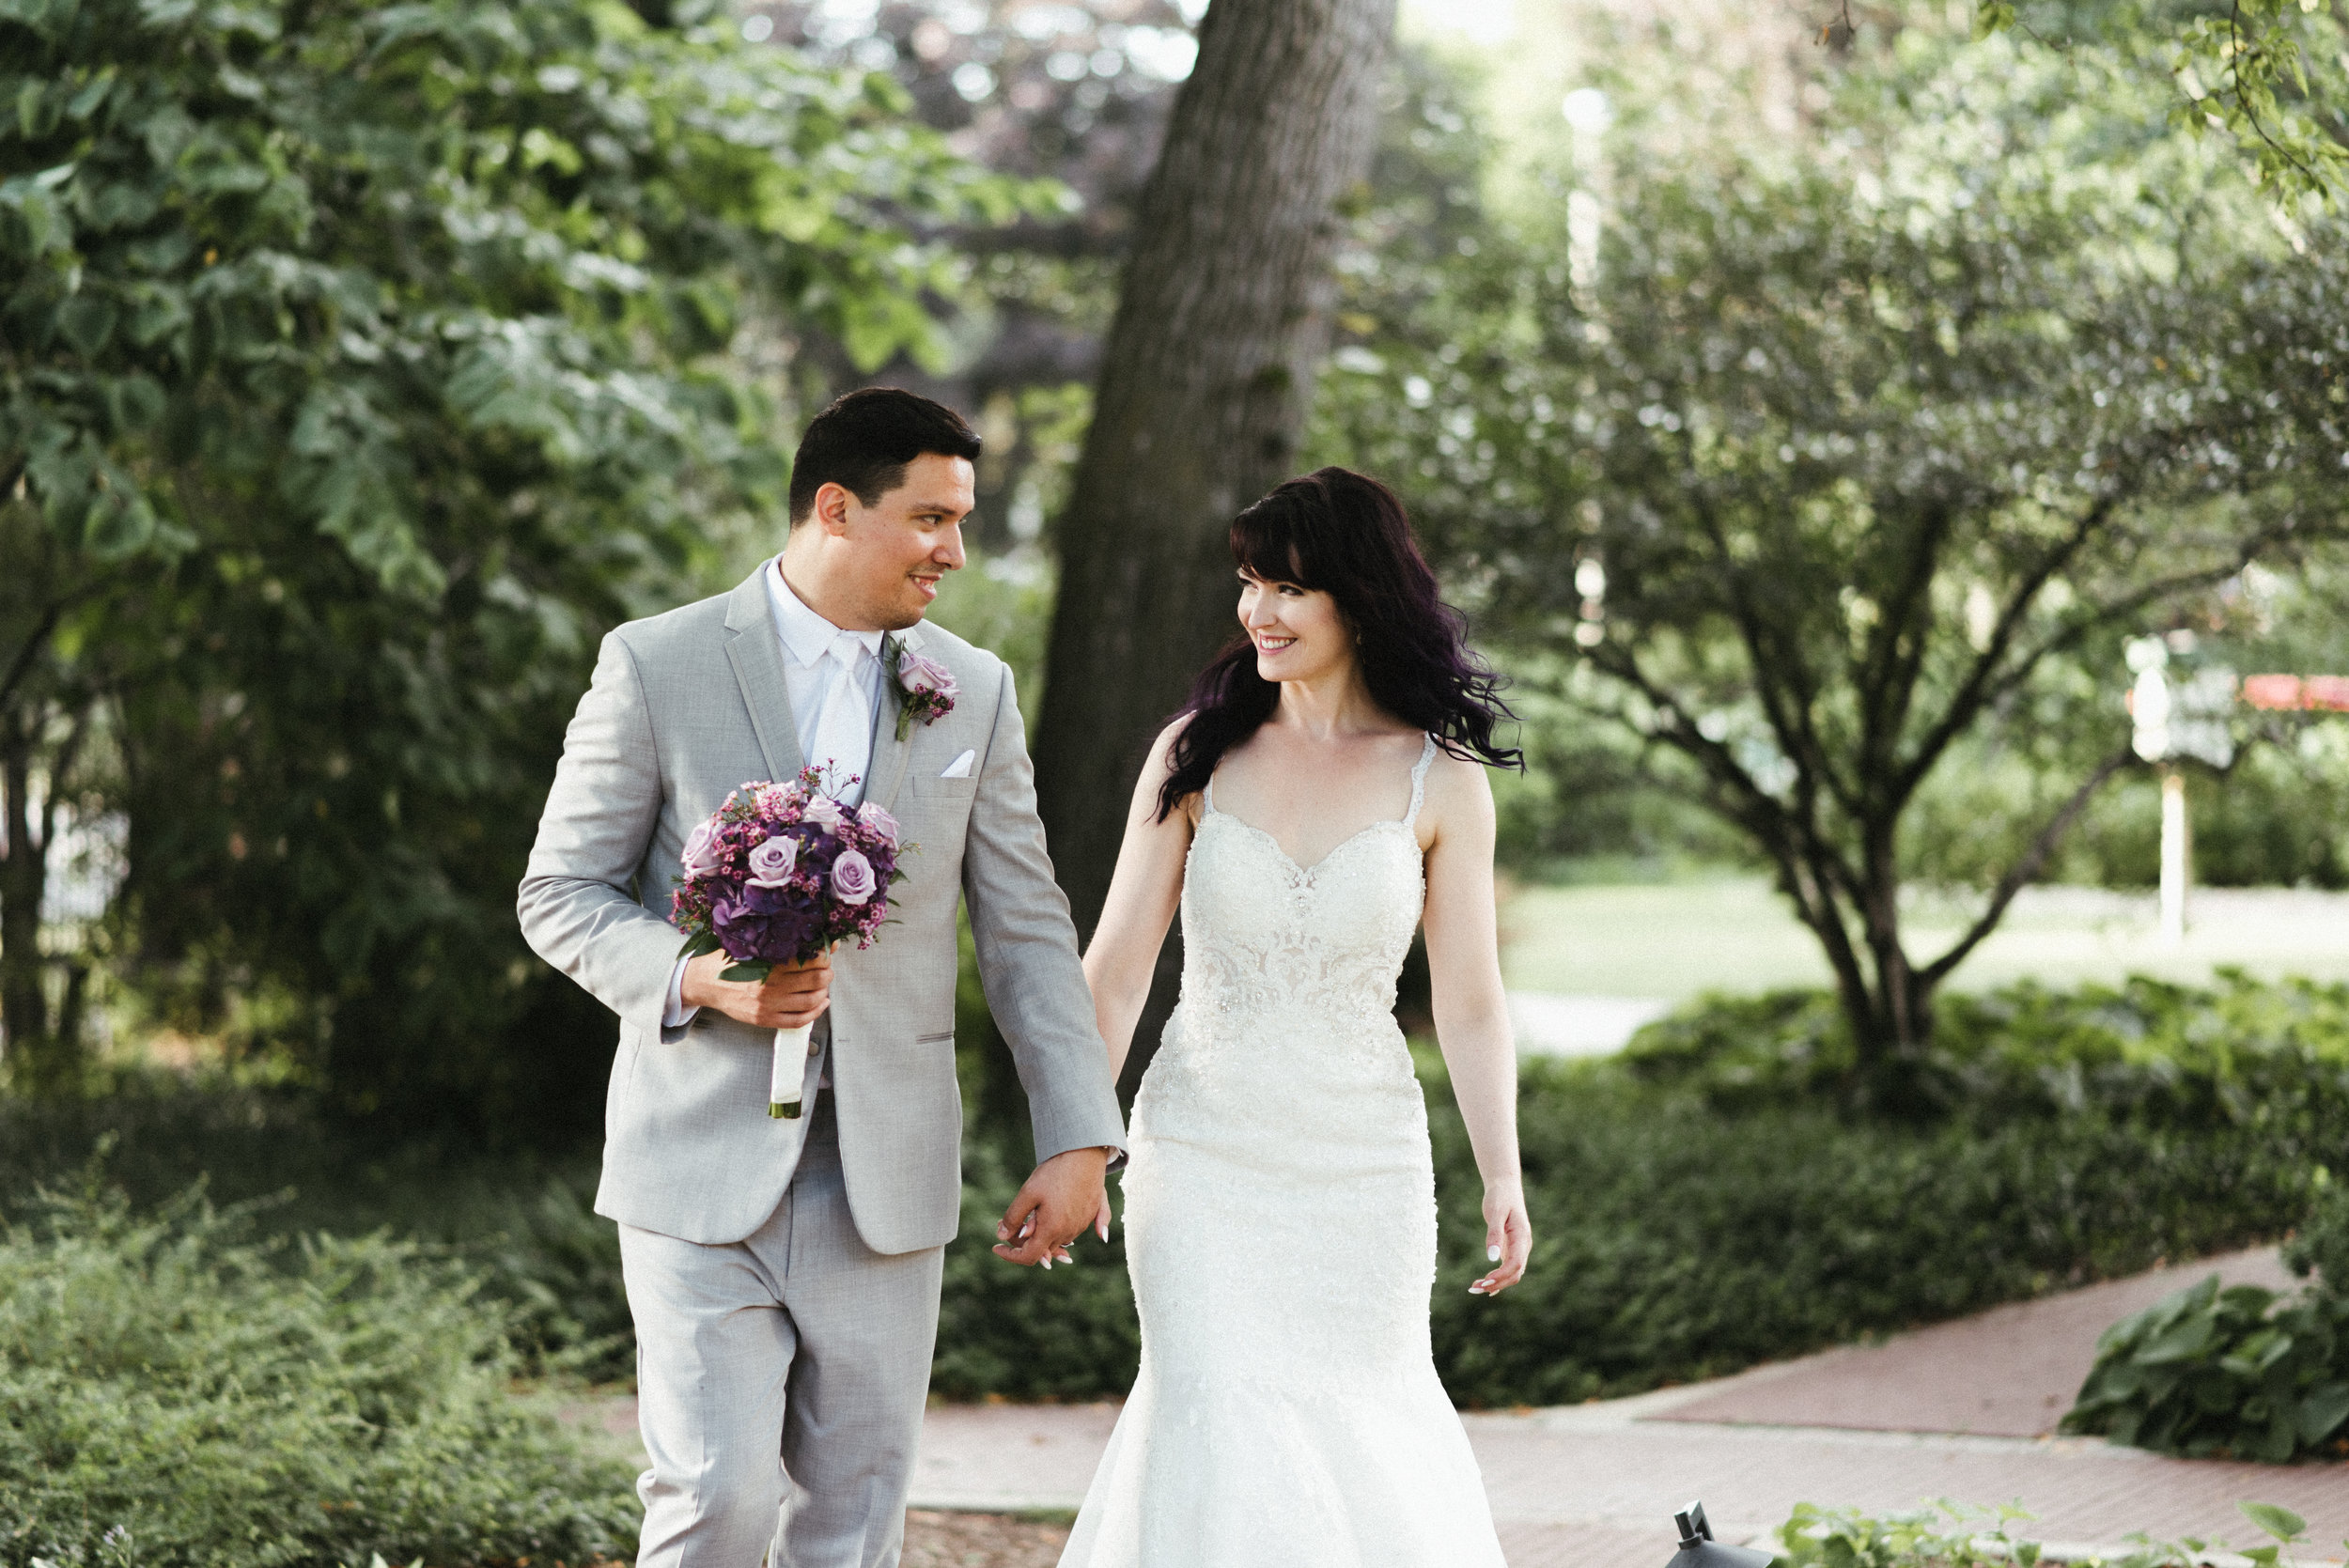 Sarah and Marcel - Romantic Vintage Wedding At Cheney Mansion | Oak Park, IL